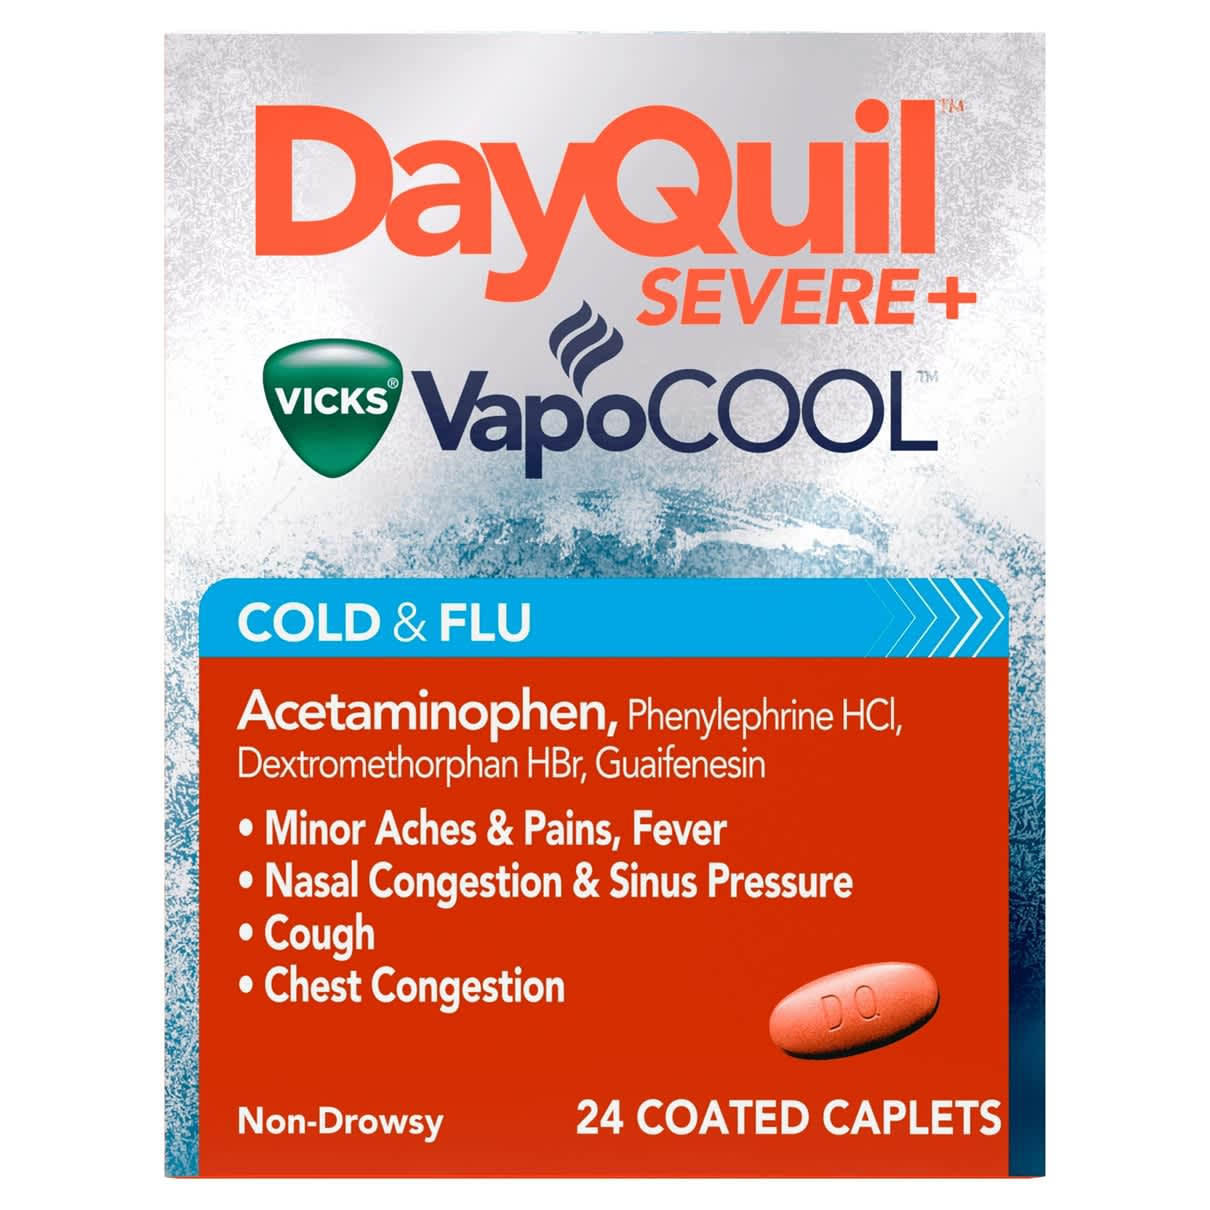 DayQuil Severe+ VapoCool 24Ct